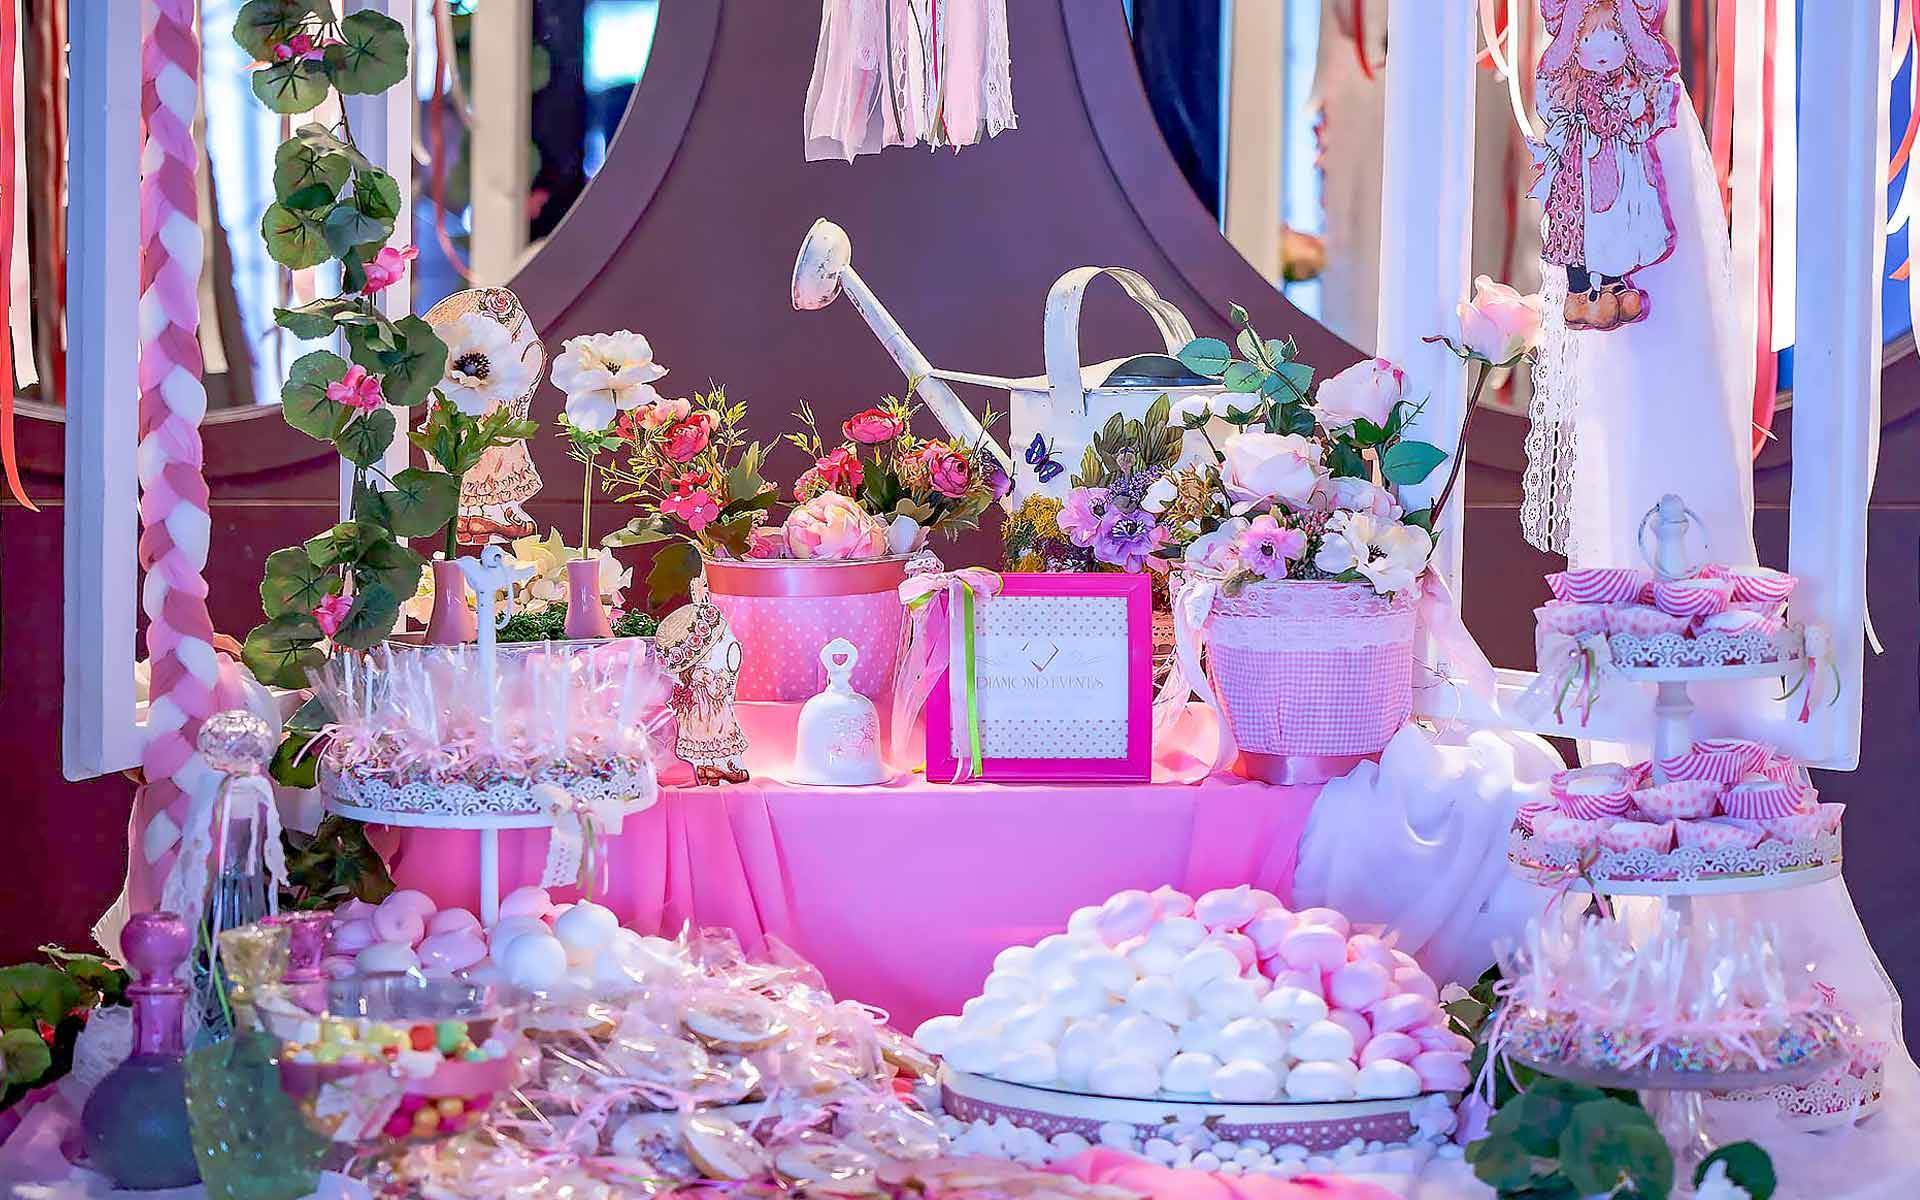 Sarah-Kay-Christening-Theme-Wish-Book-Table-by-Diamond-Events-christening